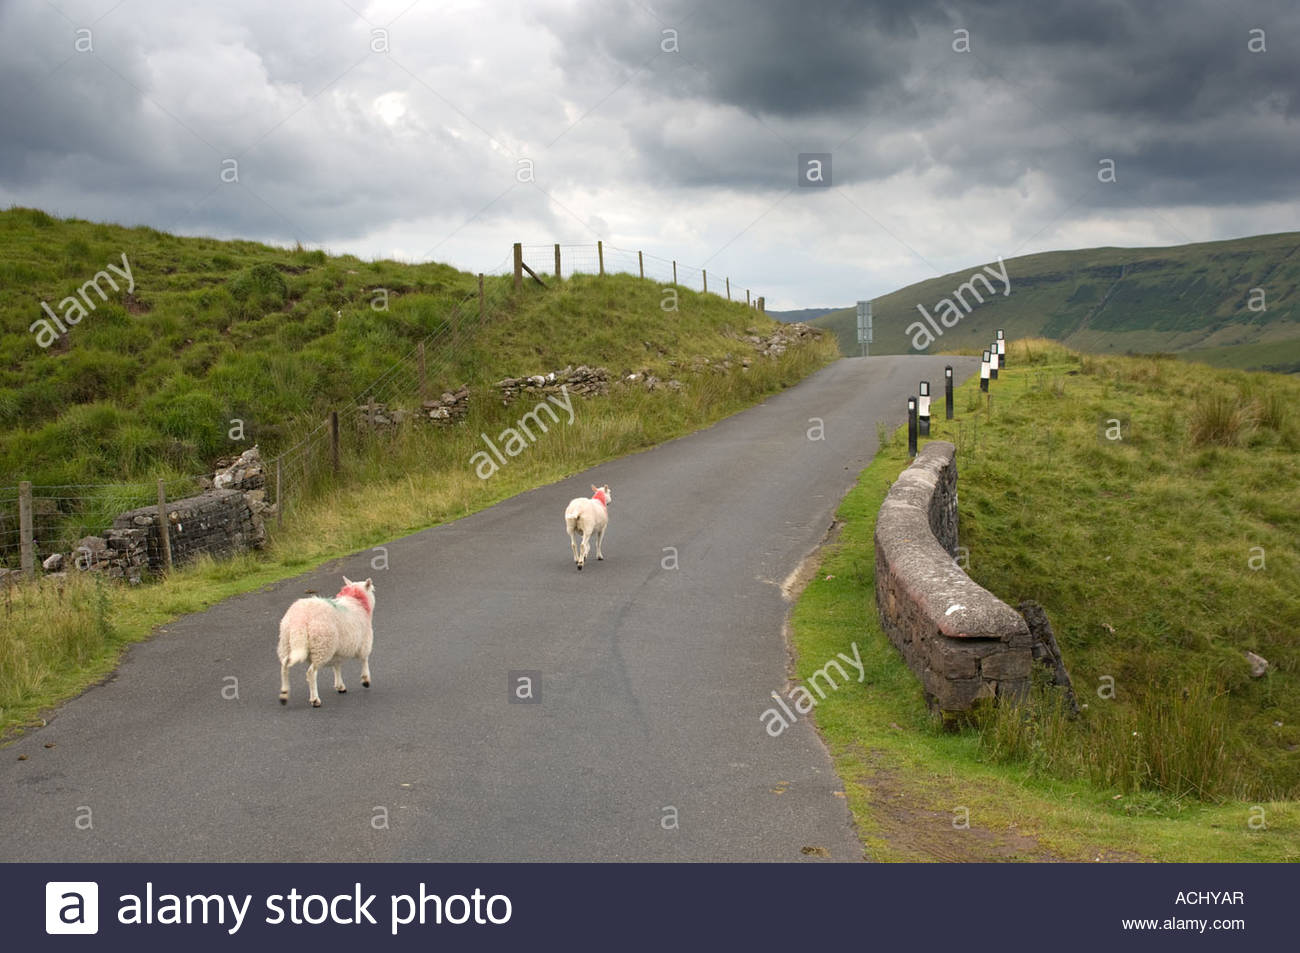 Brecon Beacons National Park South Wales, sheep on remote rural road to Trecastle in the Brecon Beacons ...